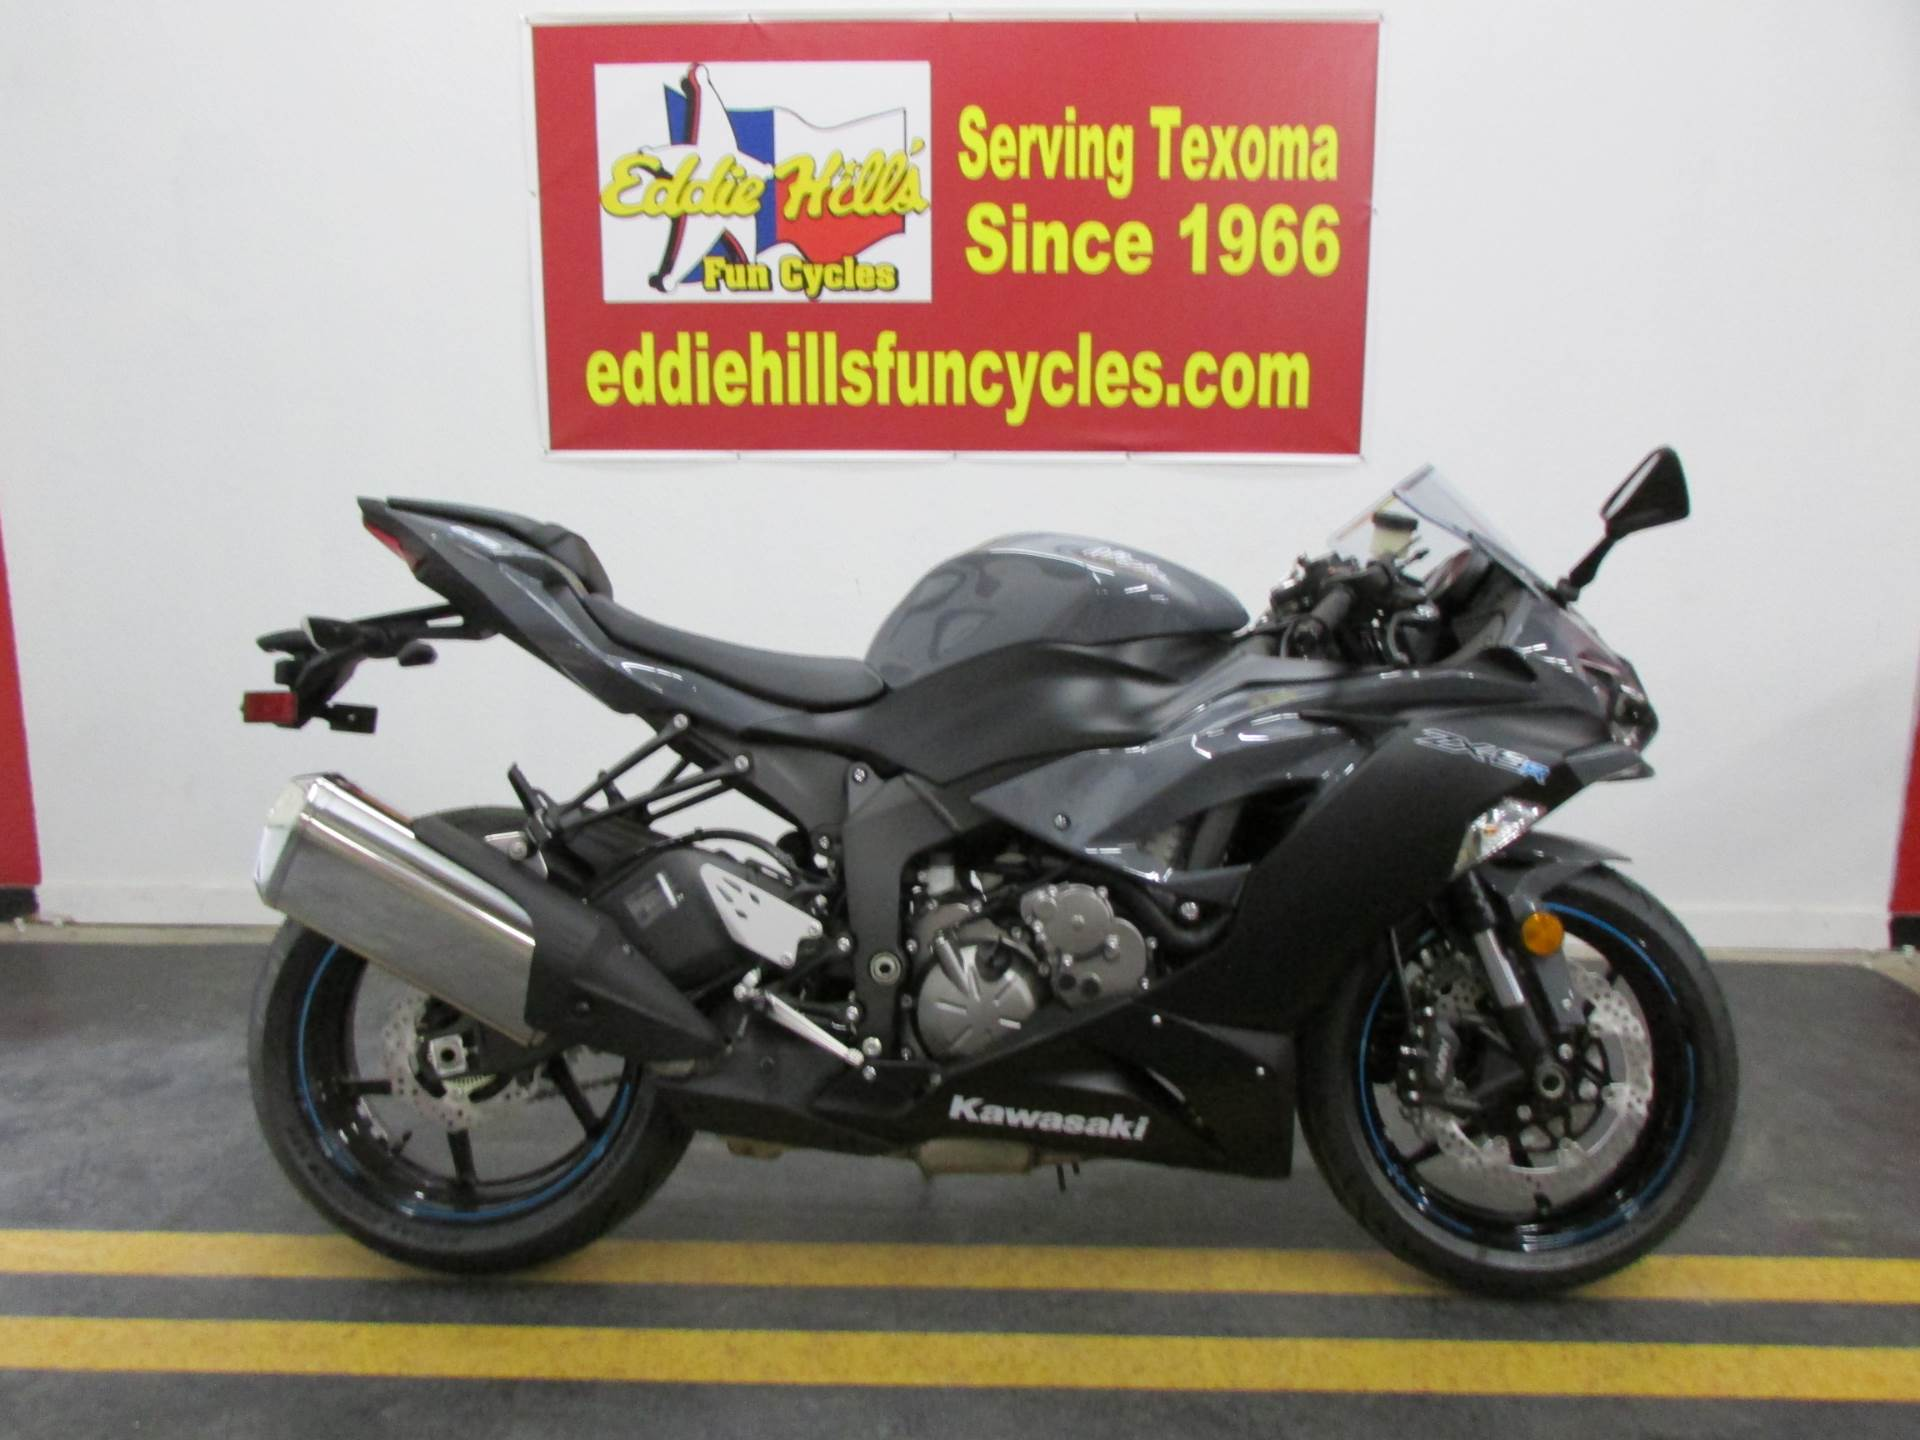 2019 Kawasaki NINJA ZX-6R for sale 5586